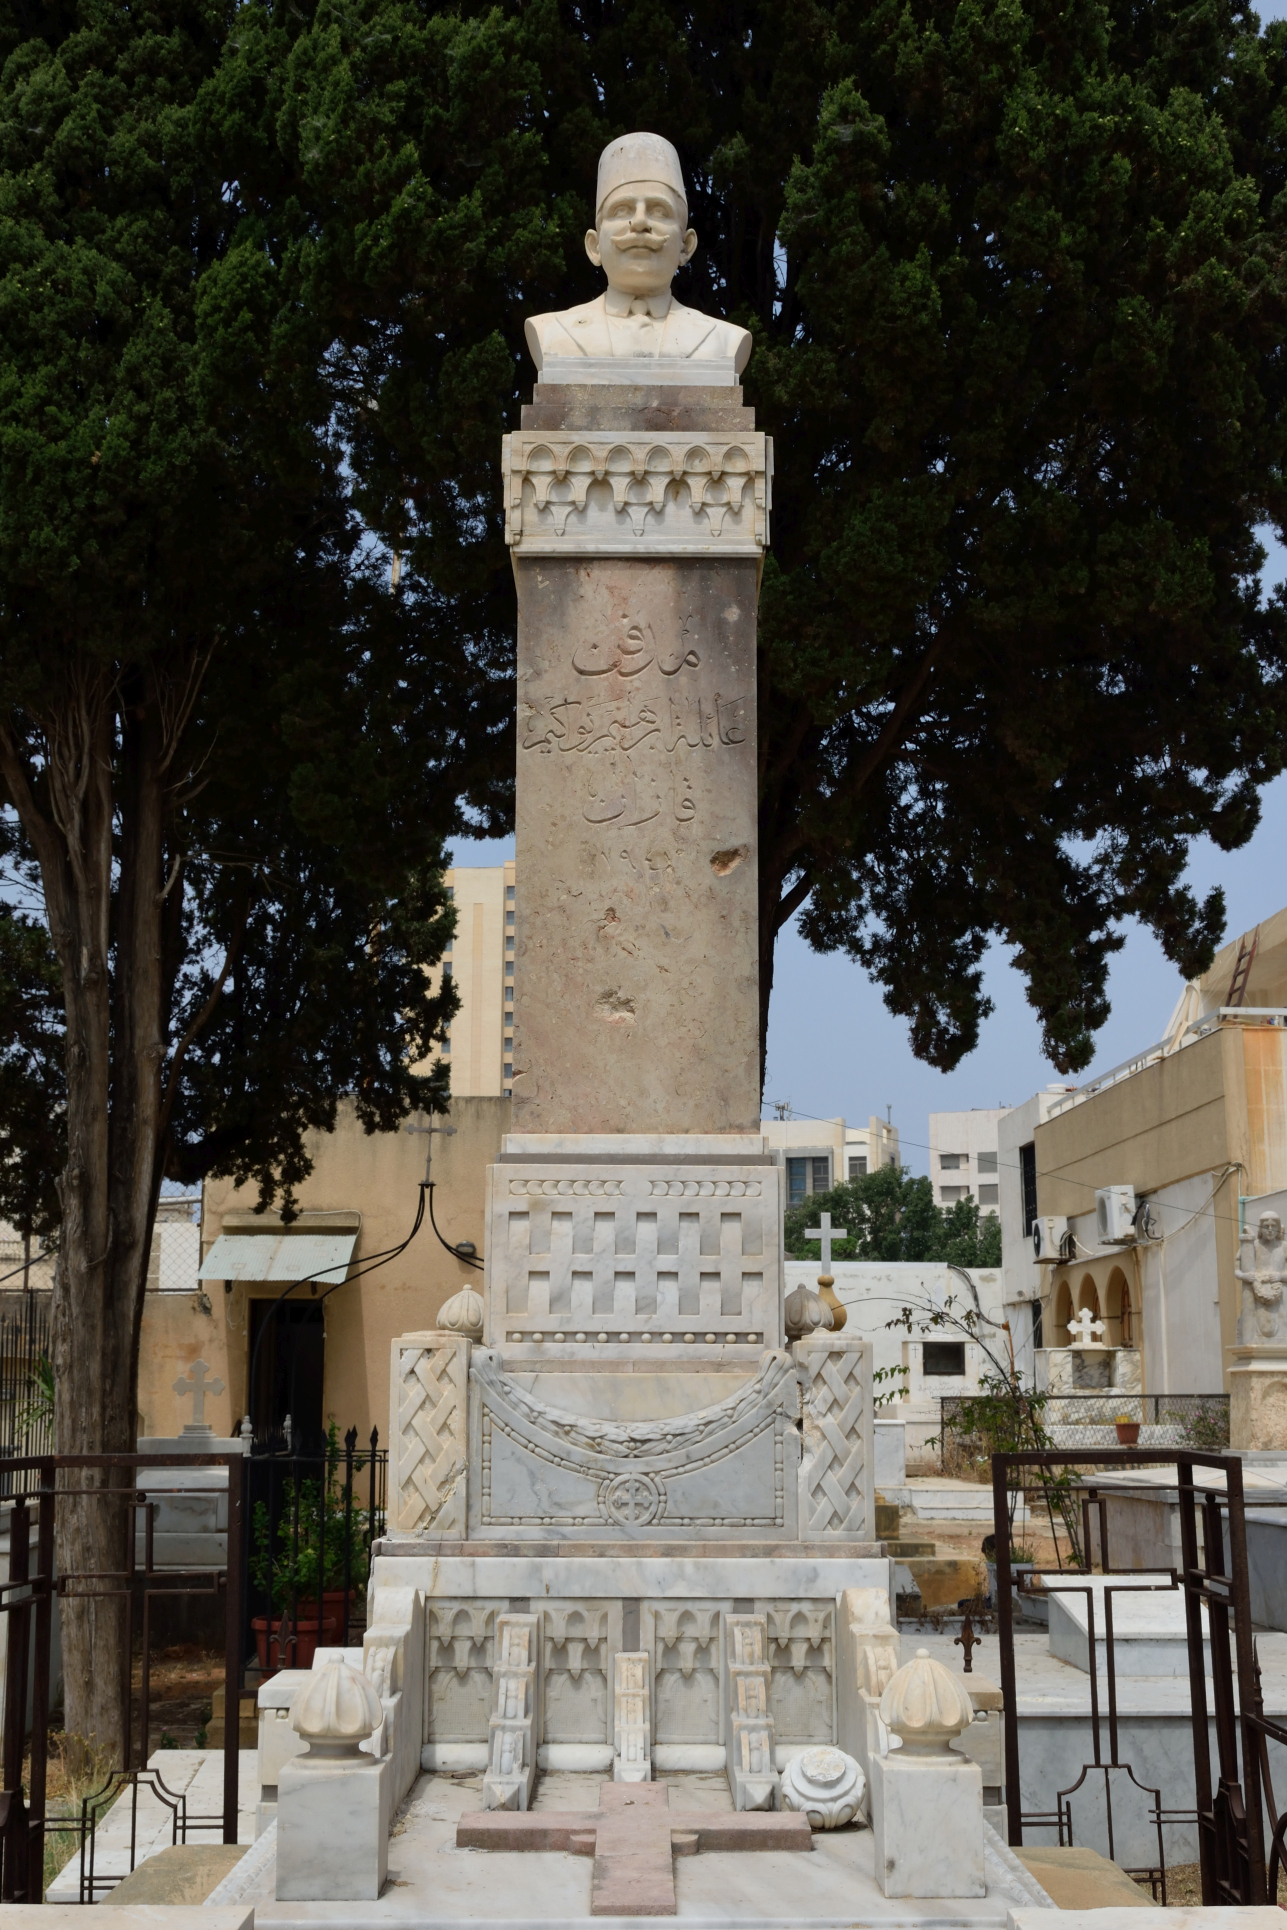 An Orthodox grave with fez in Beirut